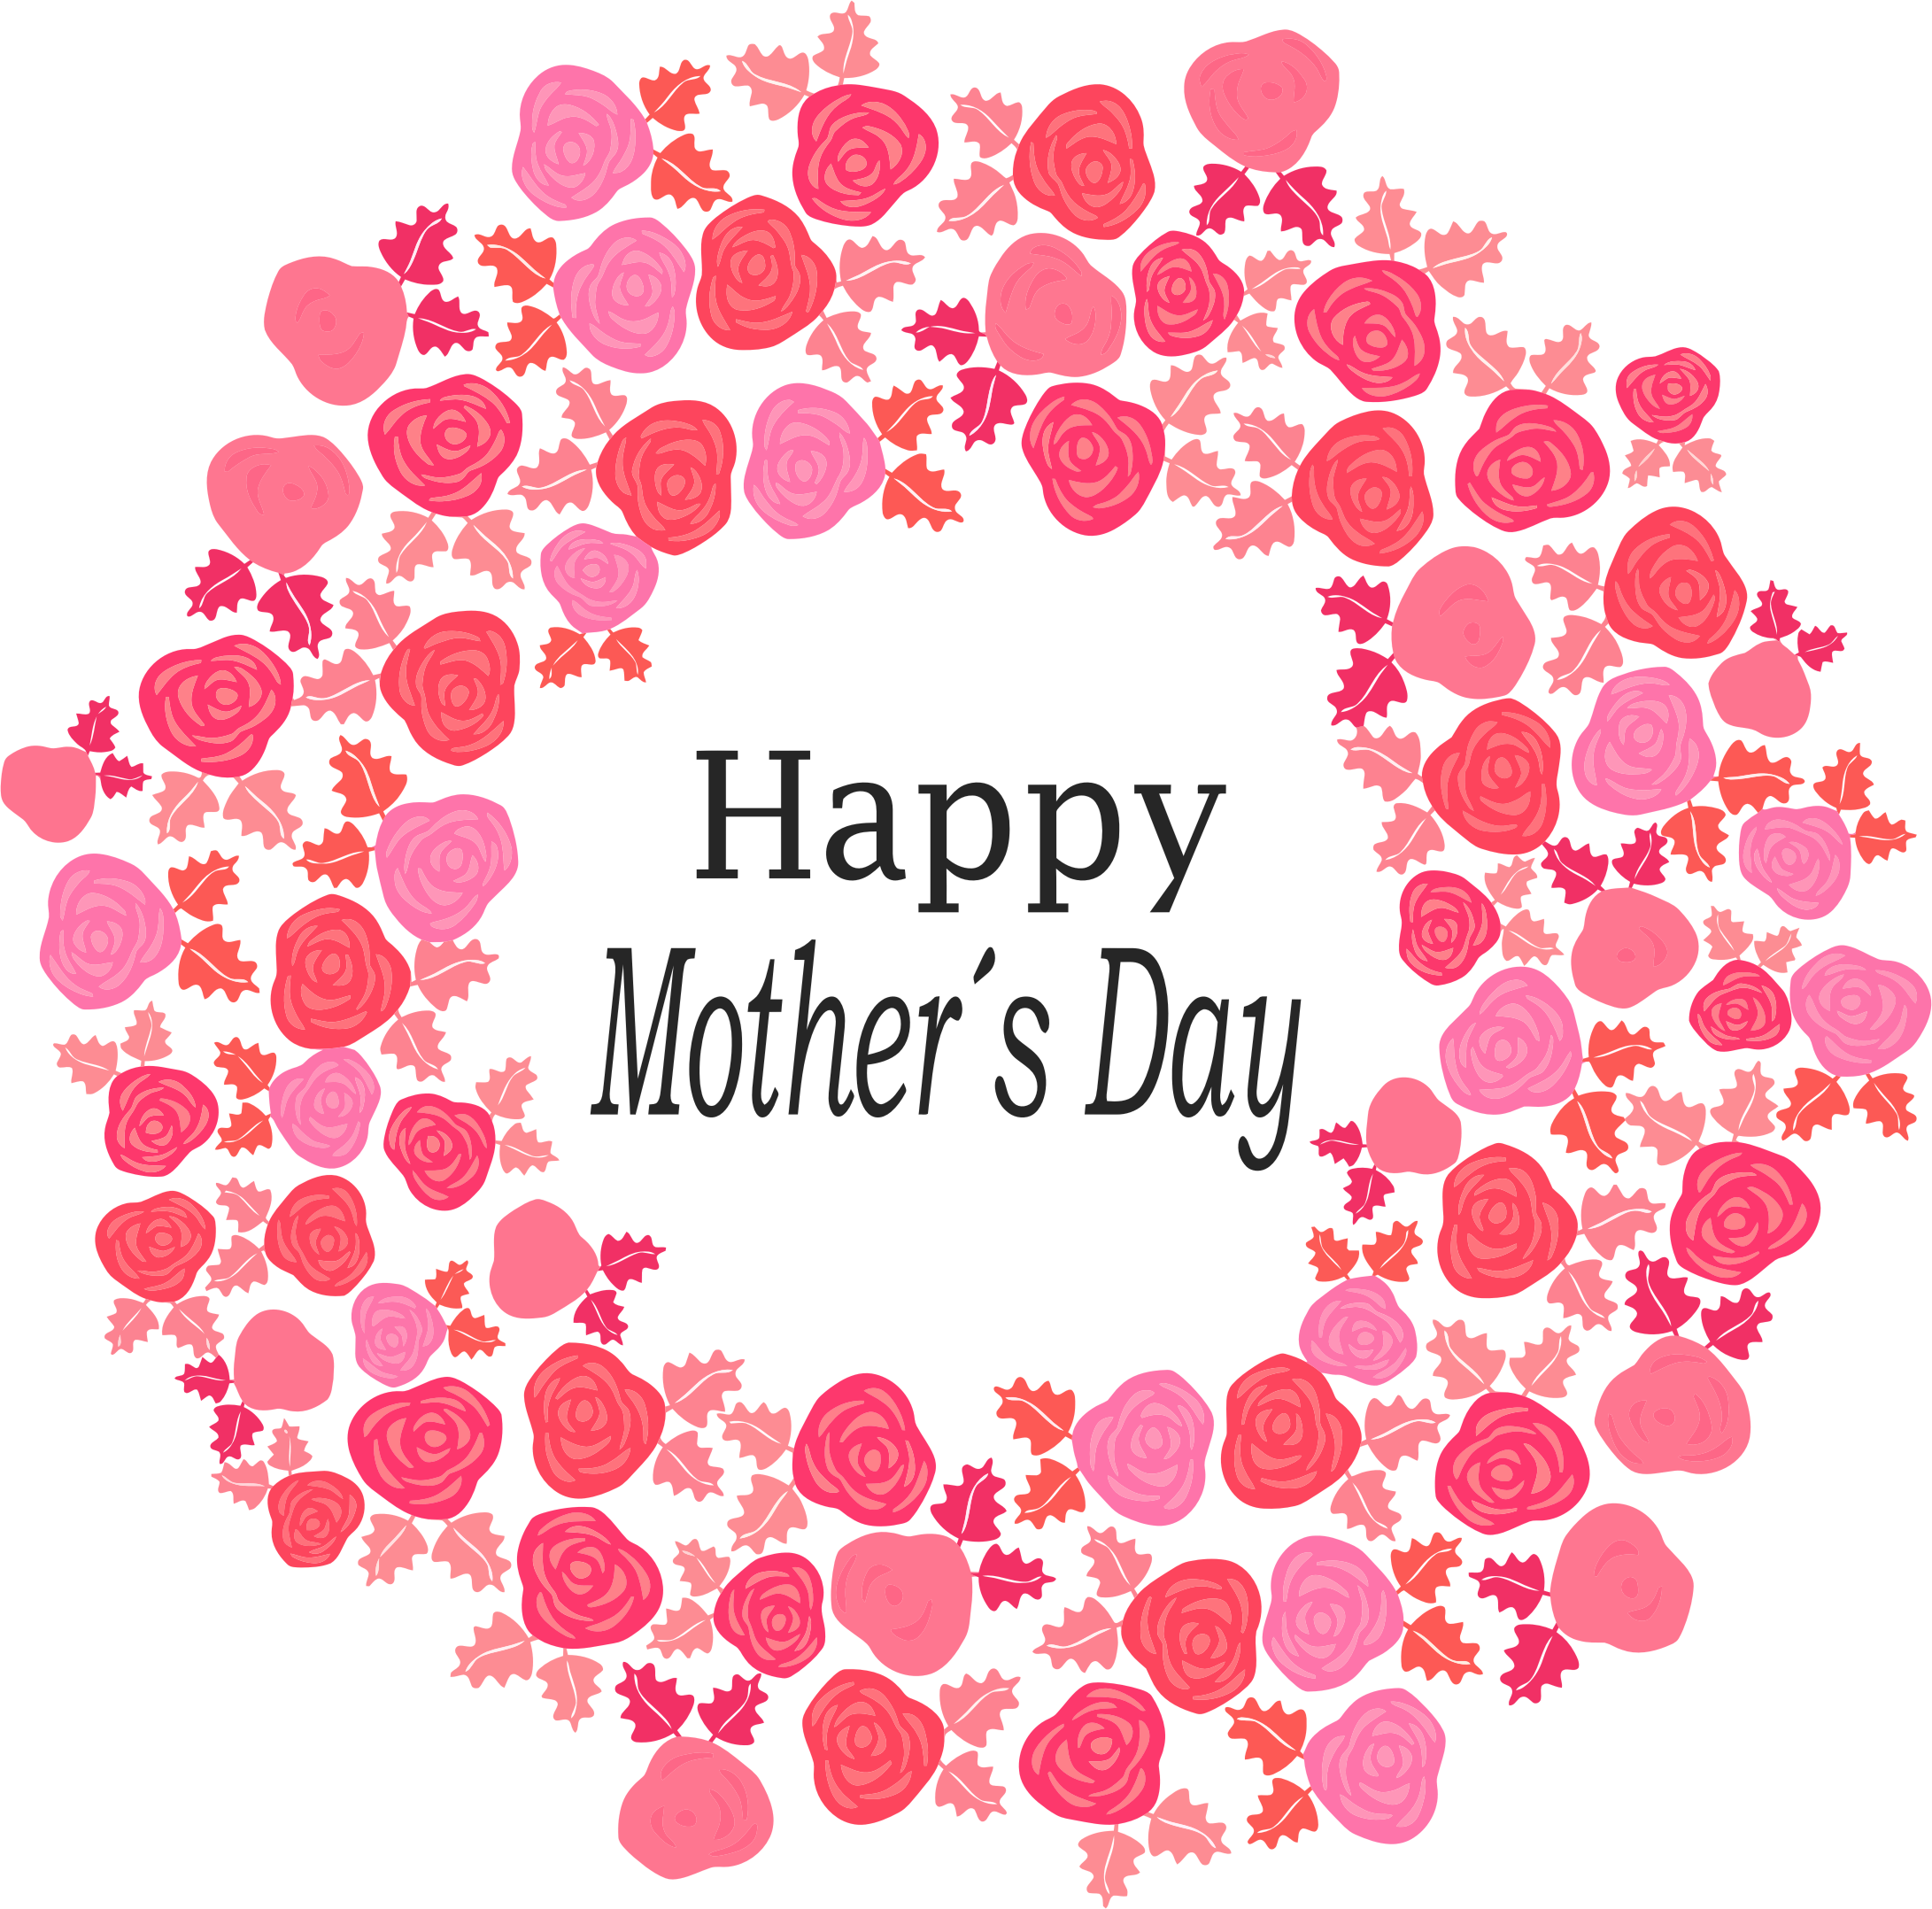 Happy Mothers Day Bouquet Of Flowers by GDJ